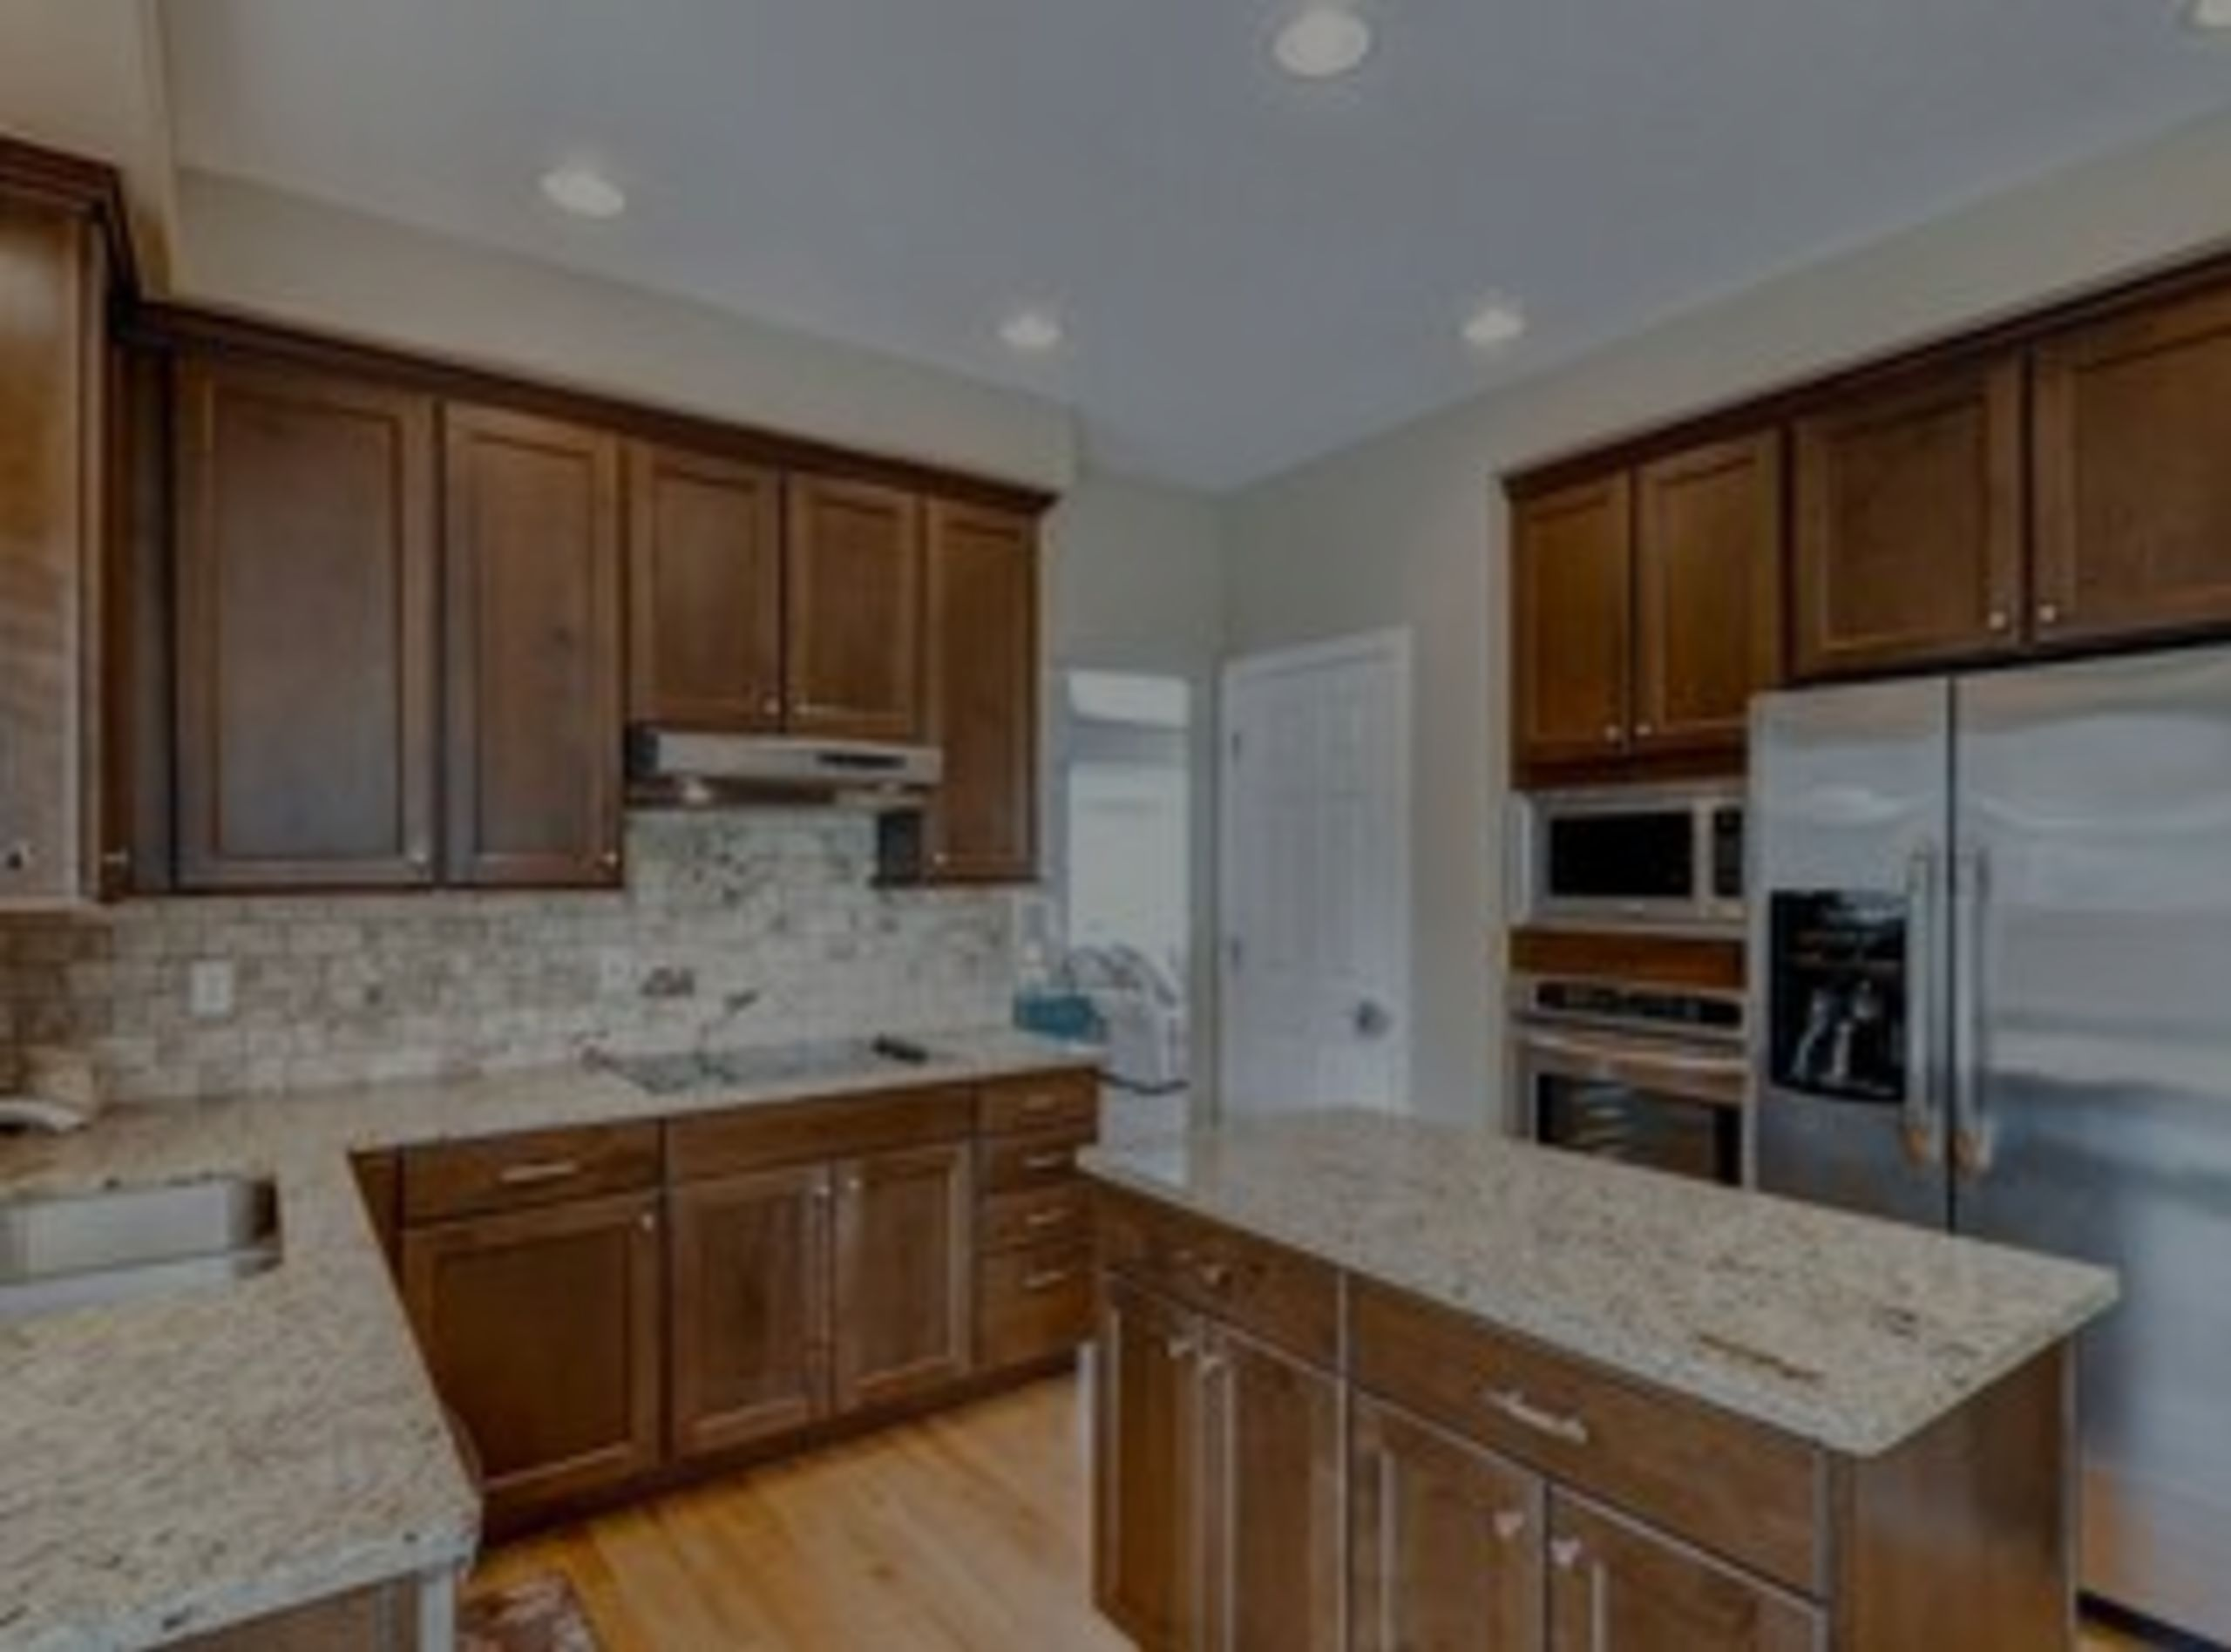 For Rent in Broomfield–Available Dec. 1